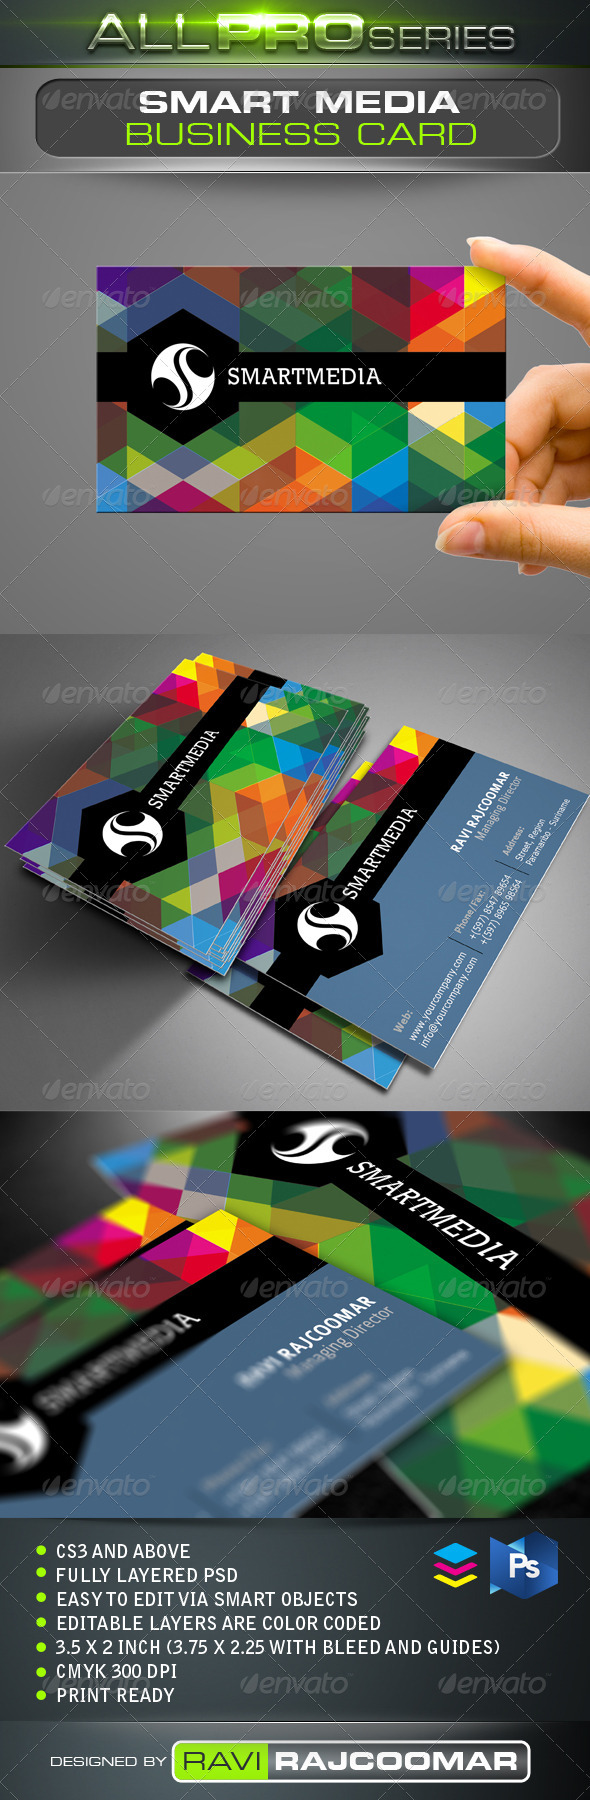 Smart media business card business cards fonts and print templates smart media business card reheart Image collections